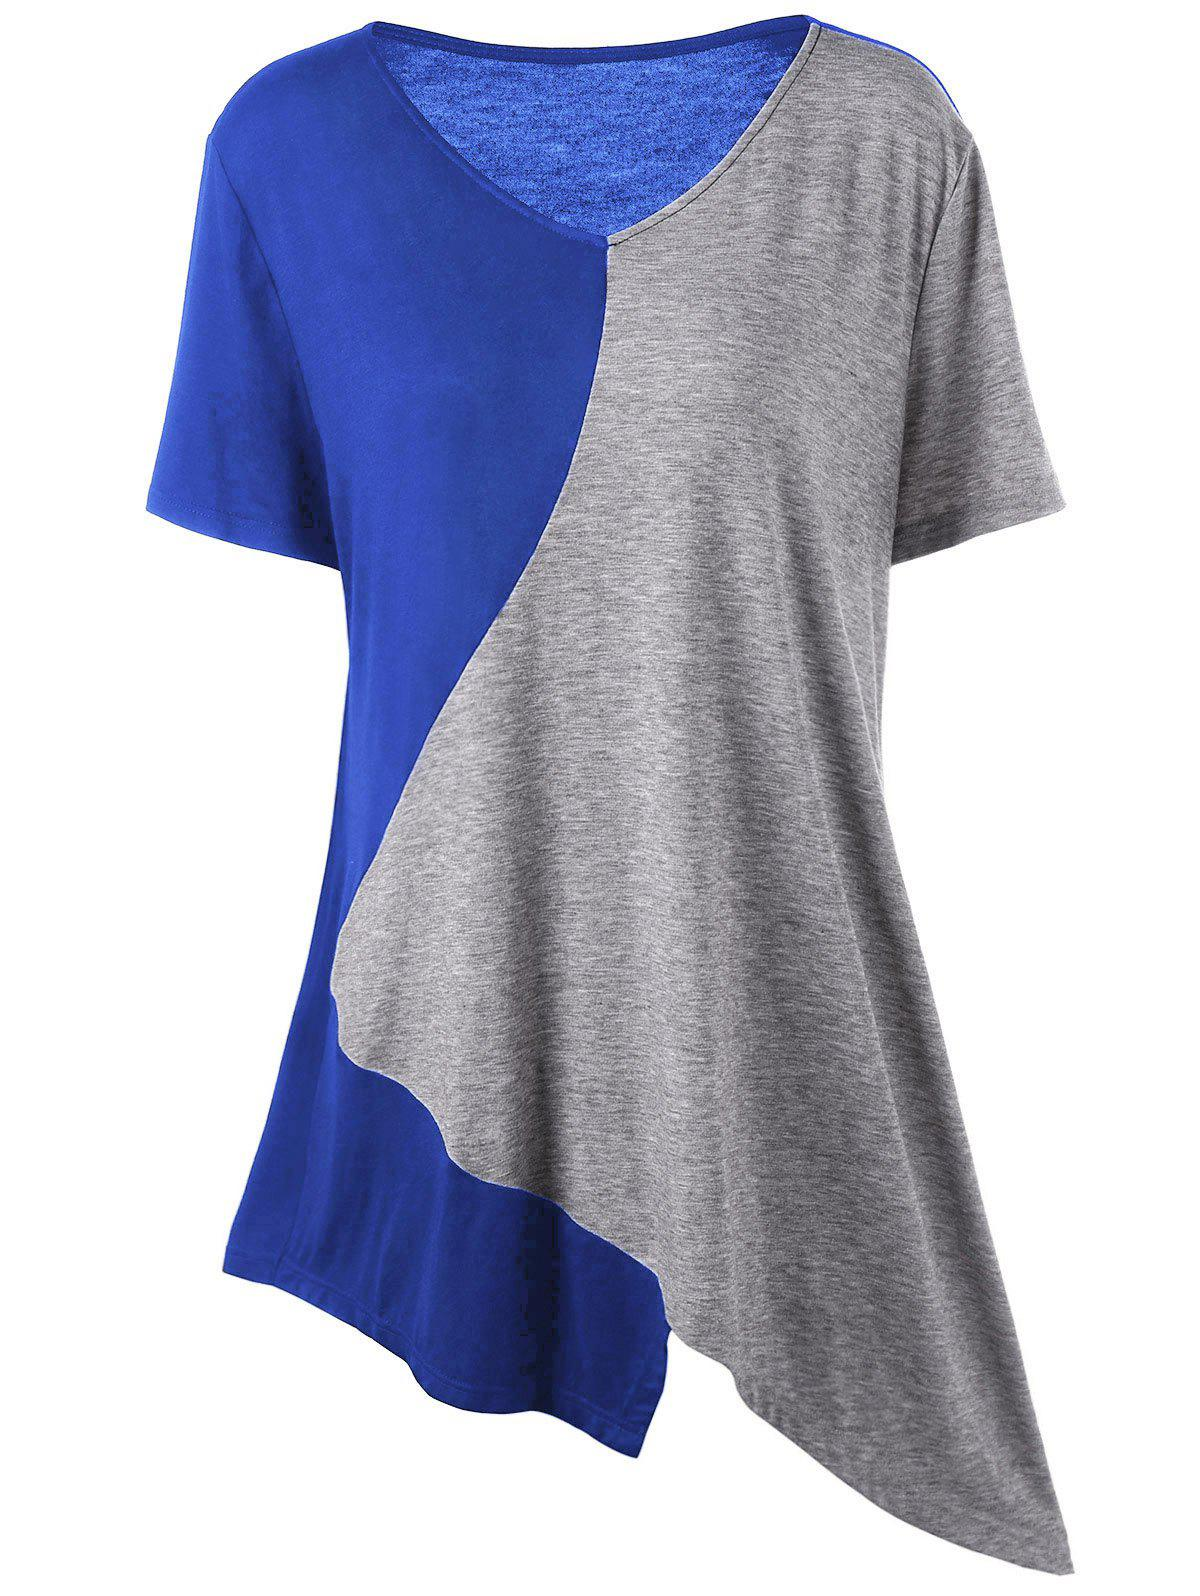 Asymmetrical Color Block Plus Size Long T-ShirtWOMEN<br><br>Size: XL; Color: GRAY AND BLUE; Material: Cotton,Spandex; Shirt Length: Long; Sleeve Length: Short; Collar: V-Neck; Style: Casual; Season: Summer; Pattern Type: Others; Weight: 0.2000kg; Package Contents: 1 x T-Shirt;